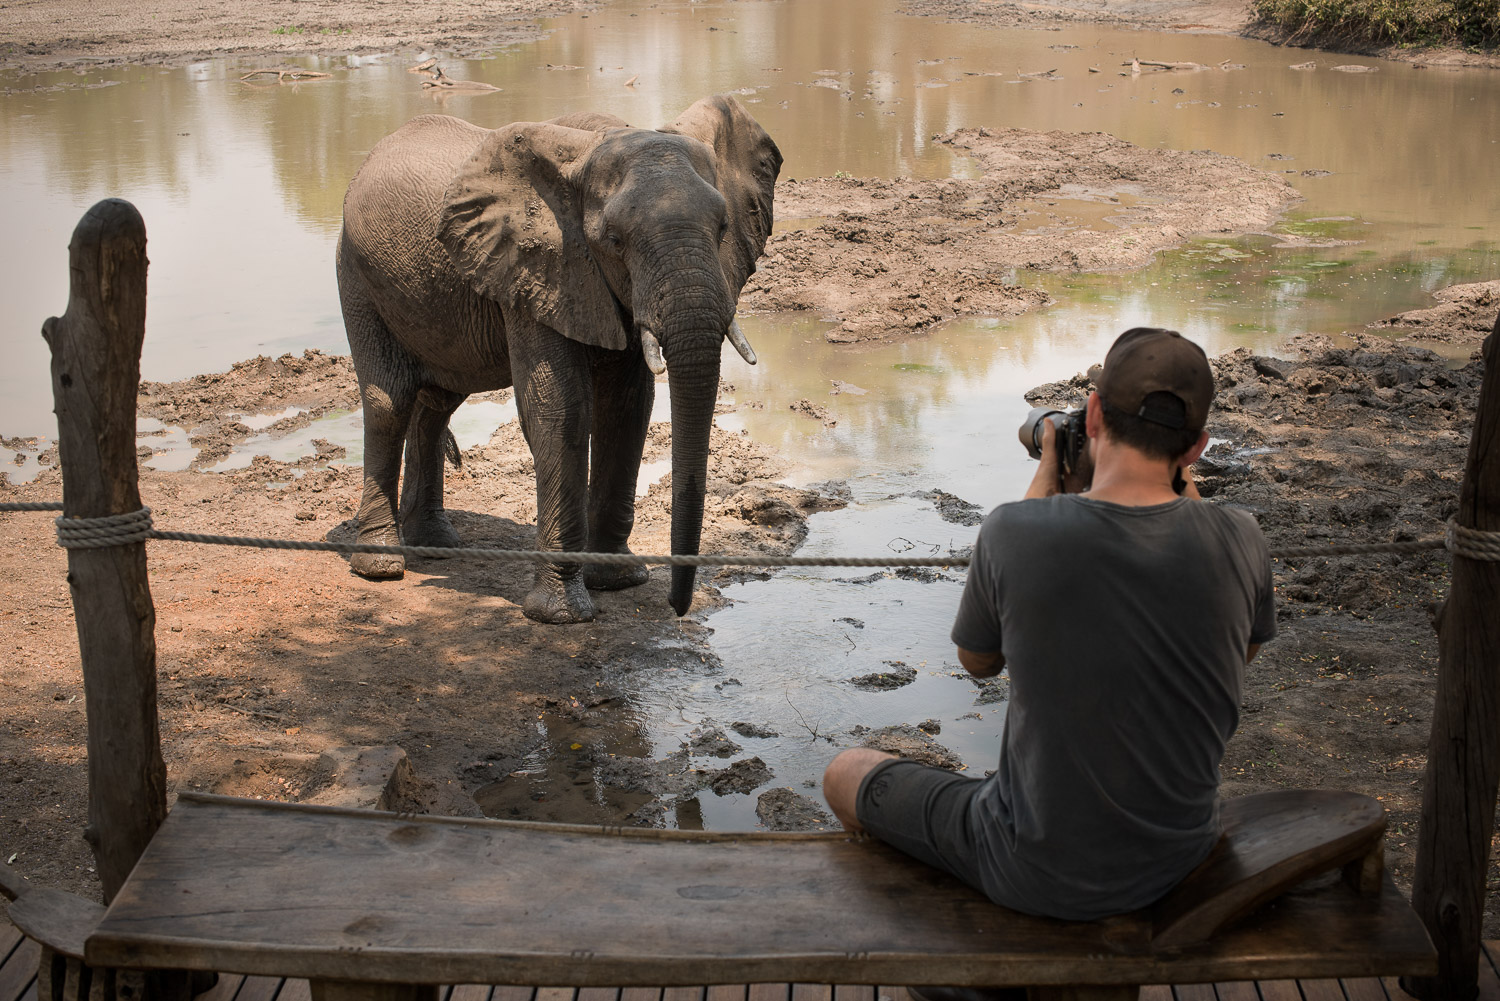 26.__kanga_camp_photography_from_main_area_with_elephant.jpg